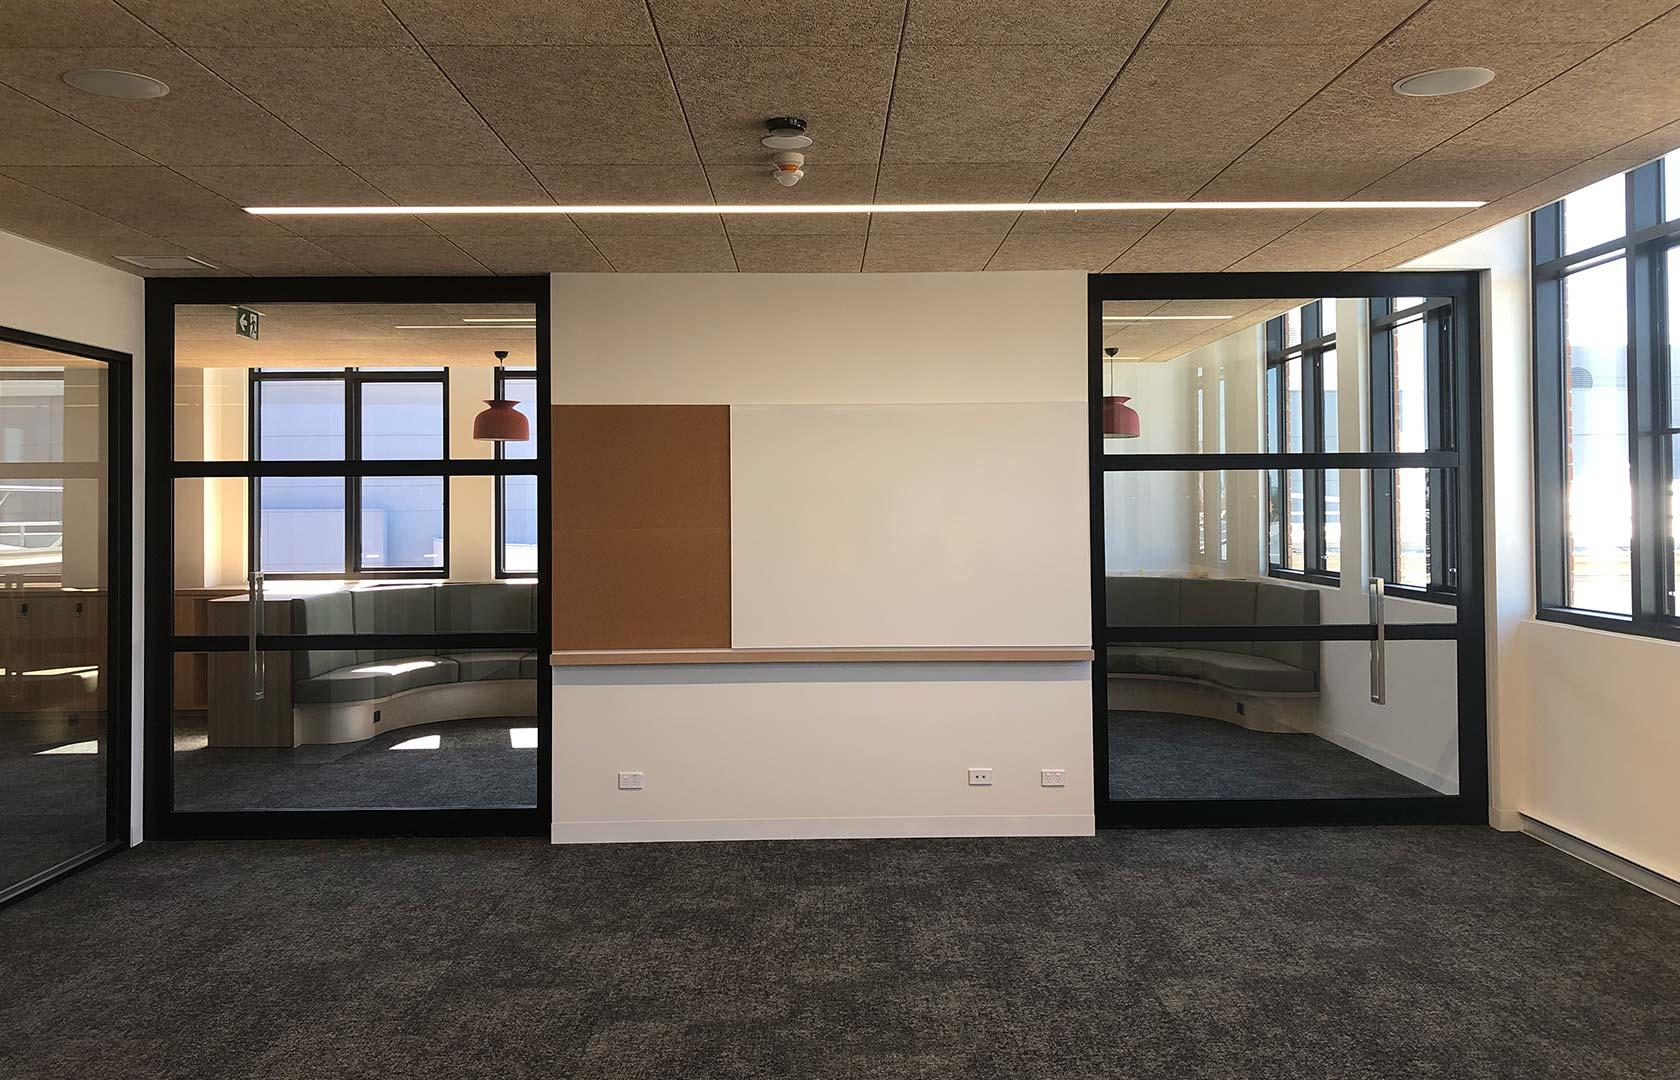 image of acoustic sliding door system used to create general learning areas in a school